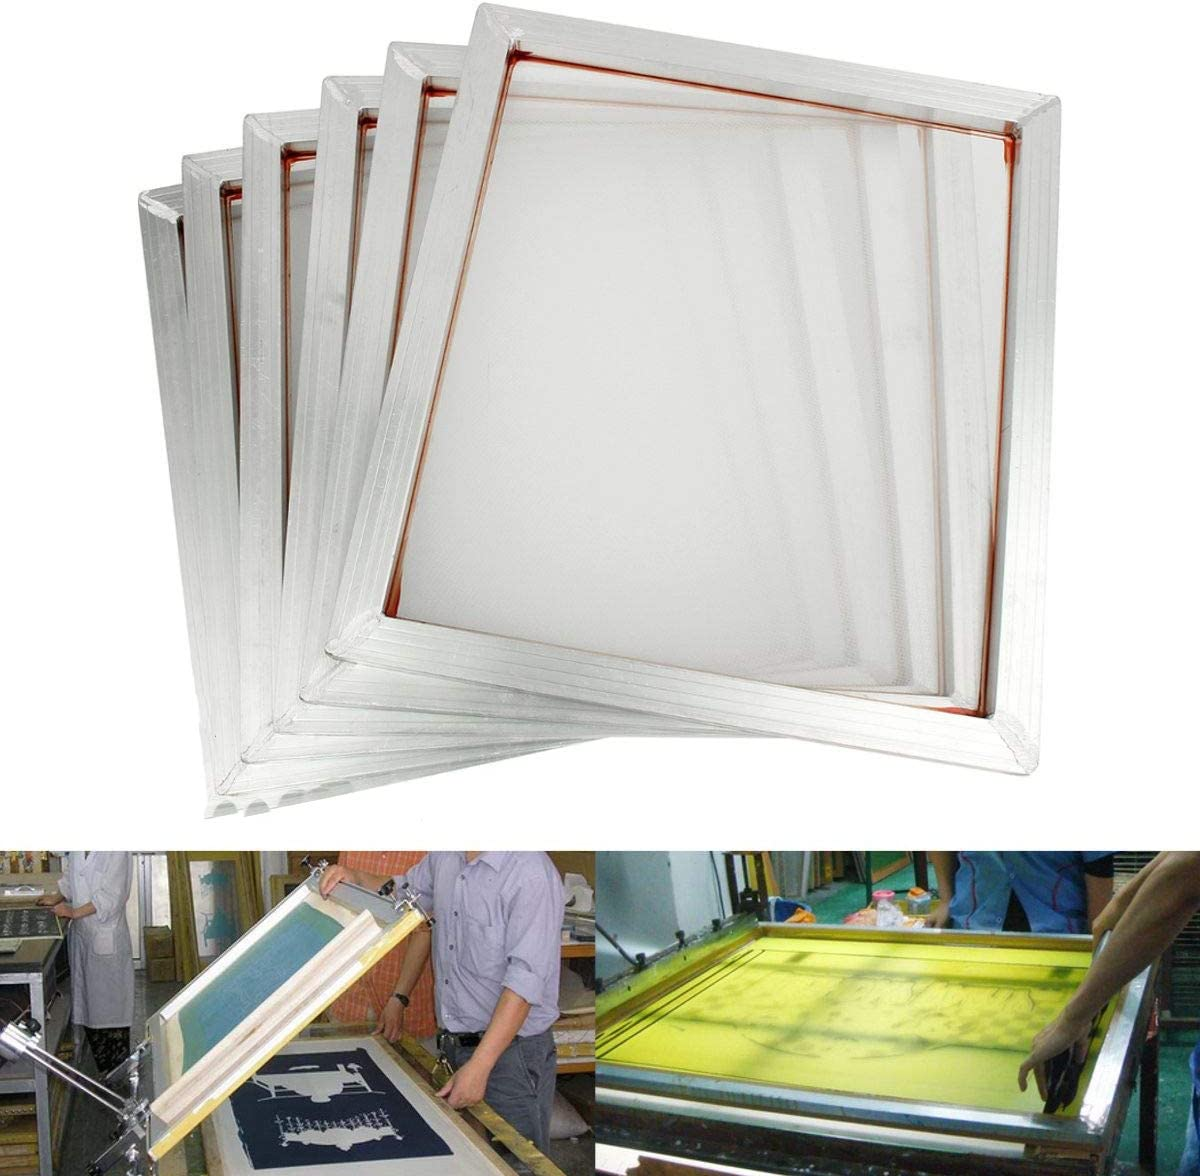 230 100T INTBUYING 6Pcs 15x17 Screen Printing Frame Mesh Pre-Stretched Aluminum Frame Yellow Mesh